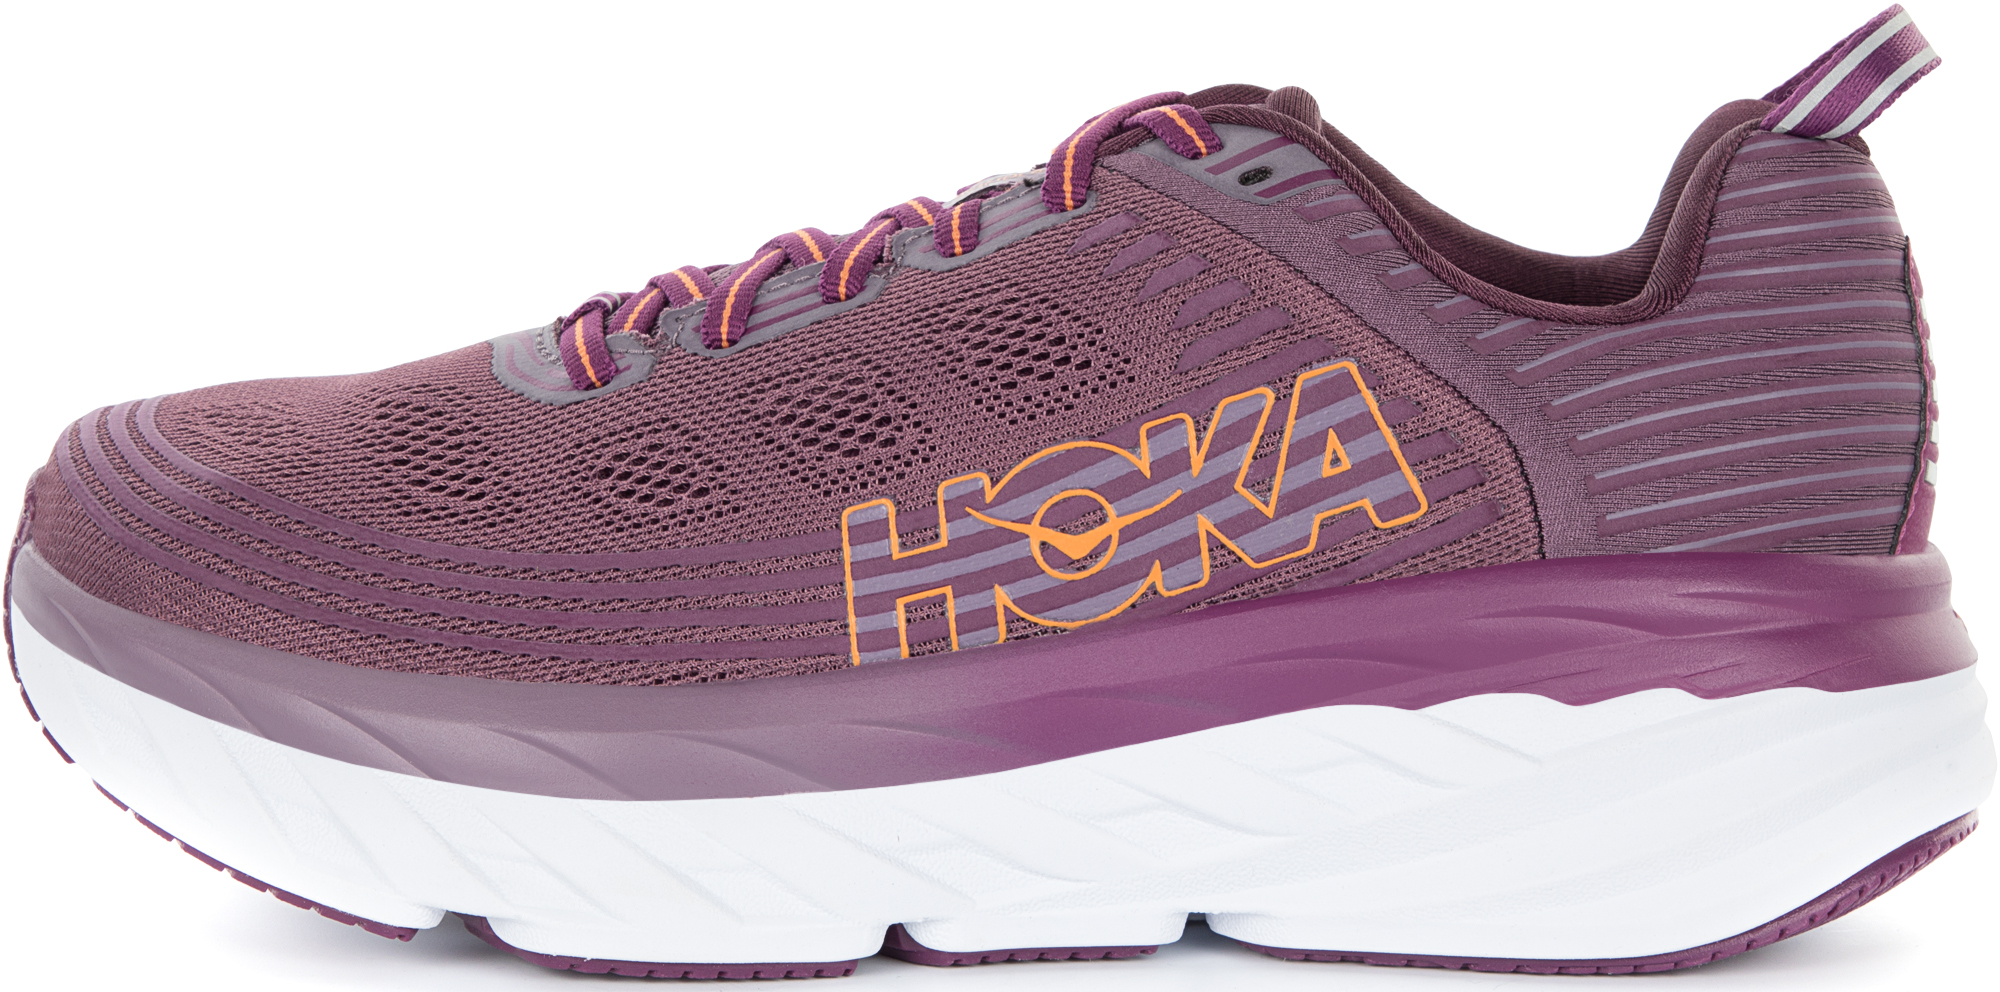 HOKA ONE ONE Кроссовки женские HOKA ONE ONE Bondi 6, размер 38.5 hoka one one women s w conquest running shoe